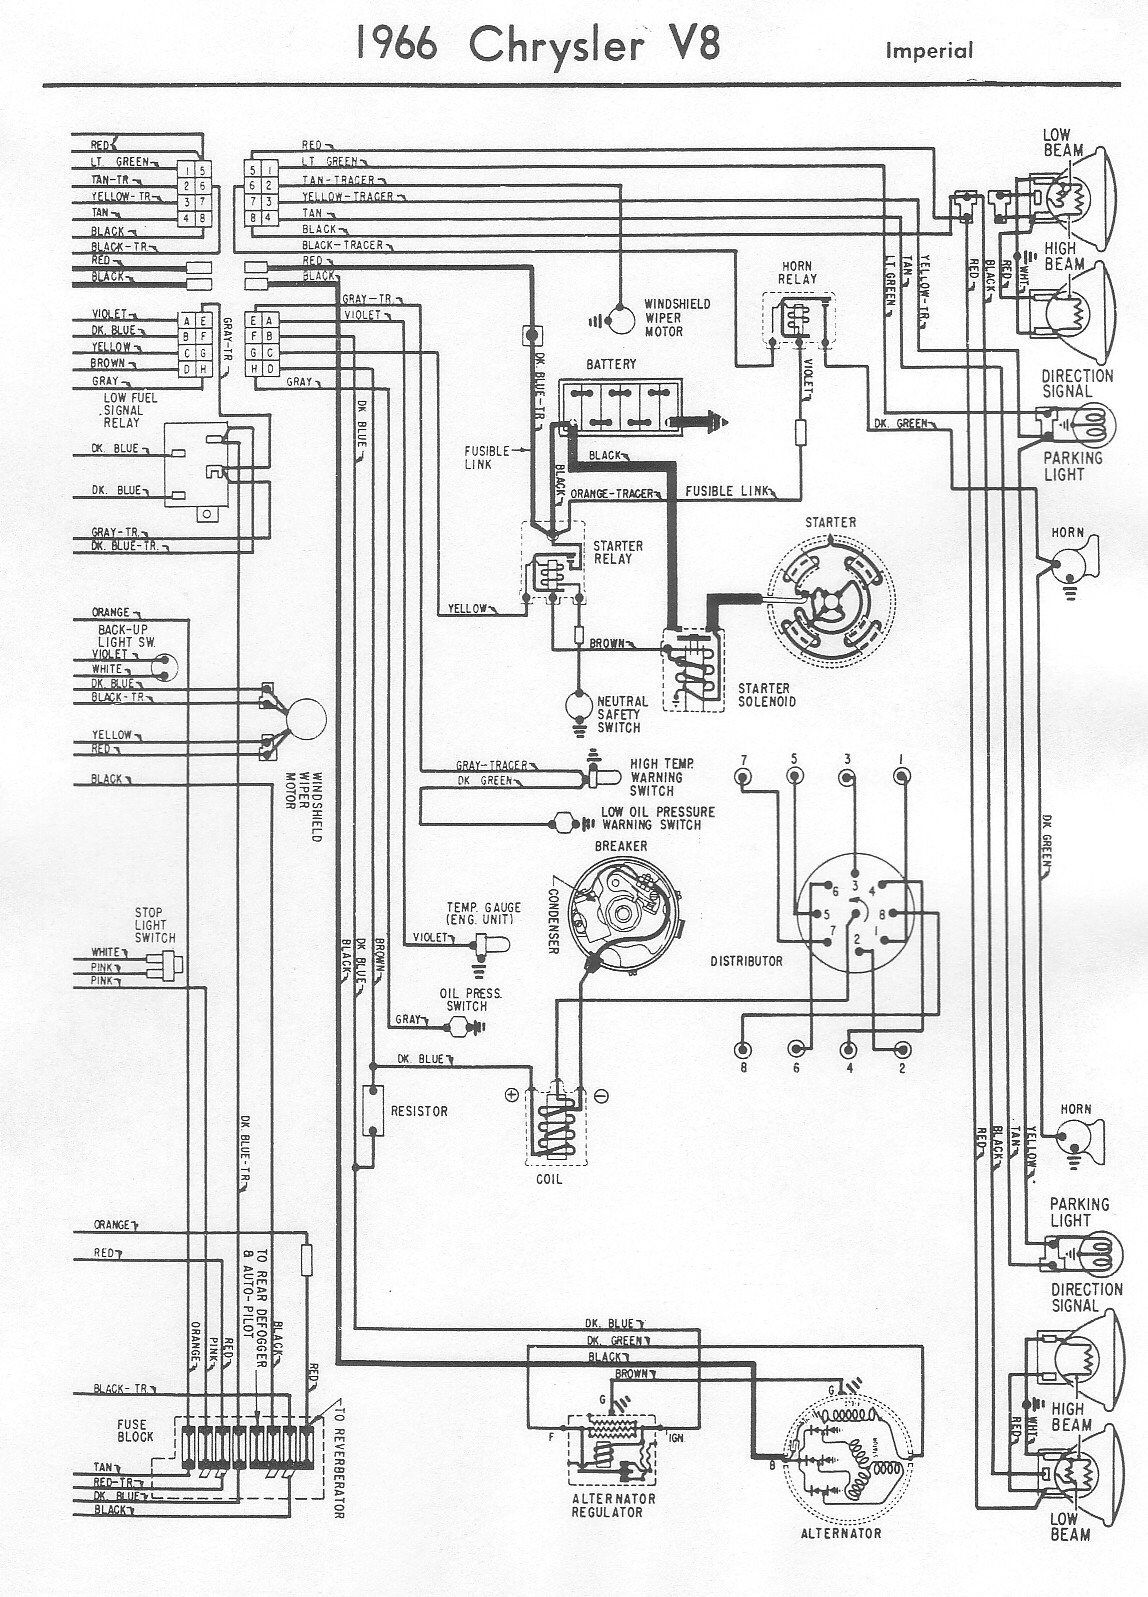 85 camaro dash wiring diagram schematic auto electrical wiring diagram rh semanticscholar org uk edu bitoku me